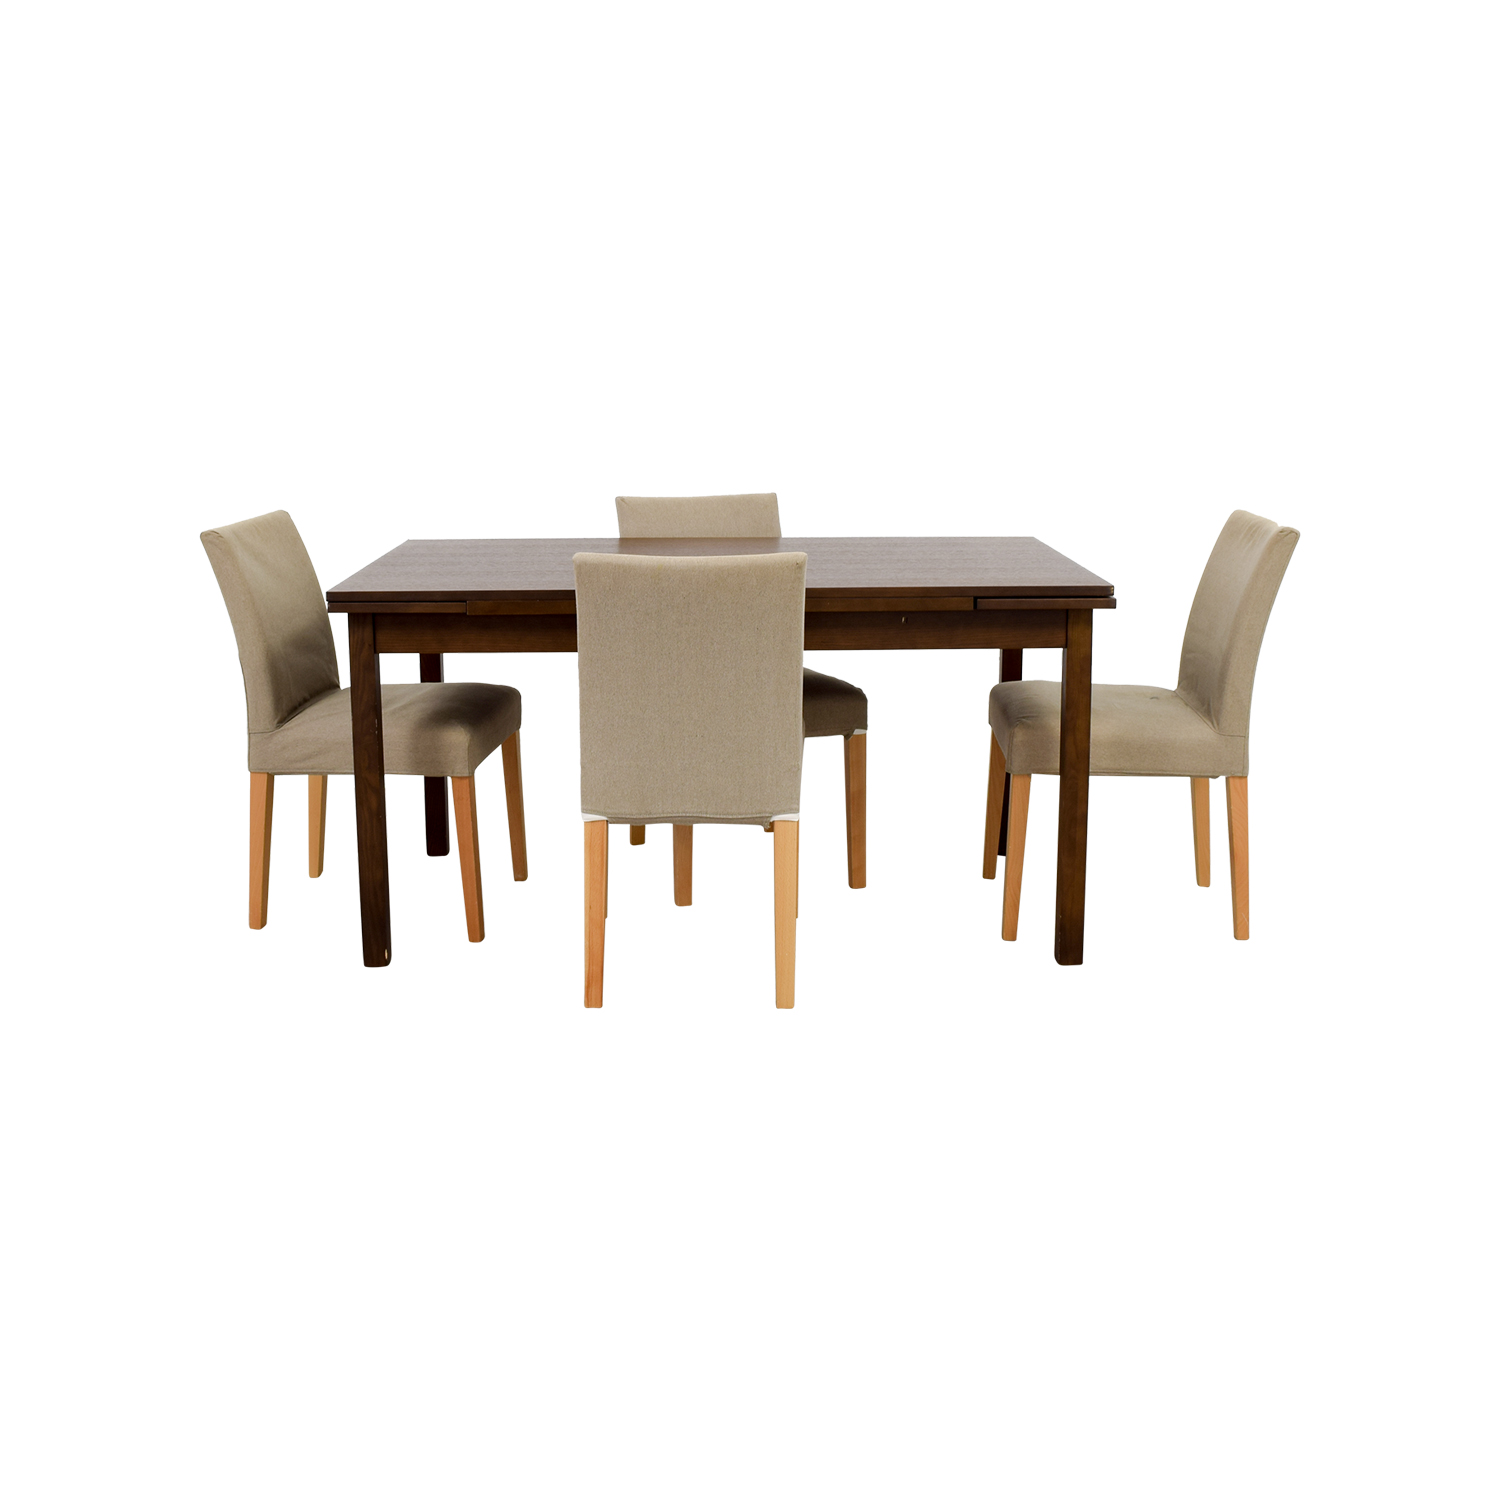 Muji Muji Extendable Dining Table with Chairs